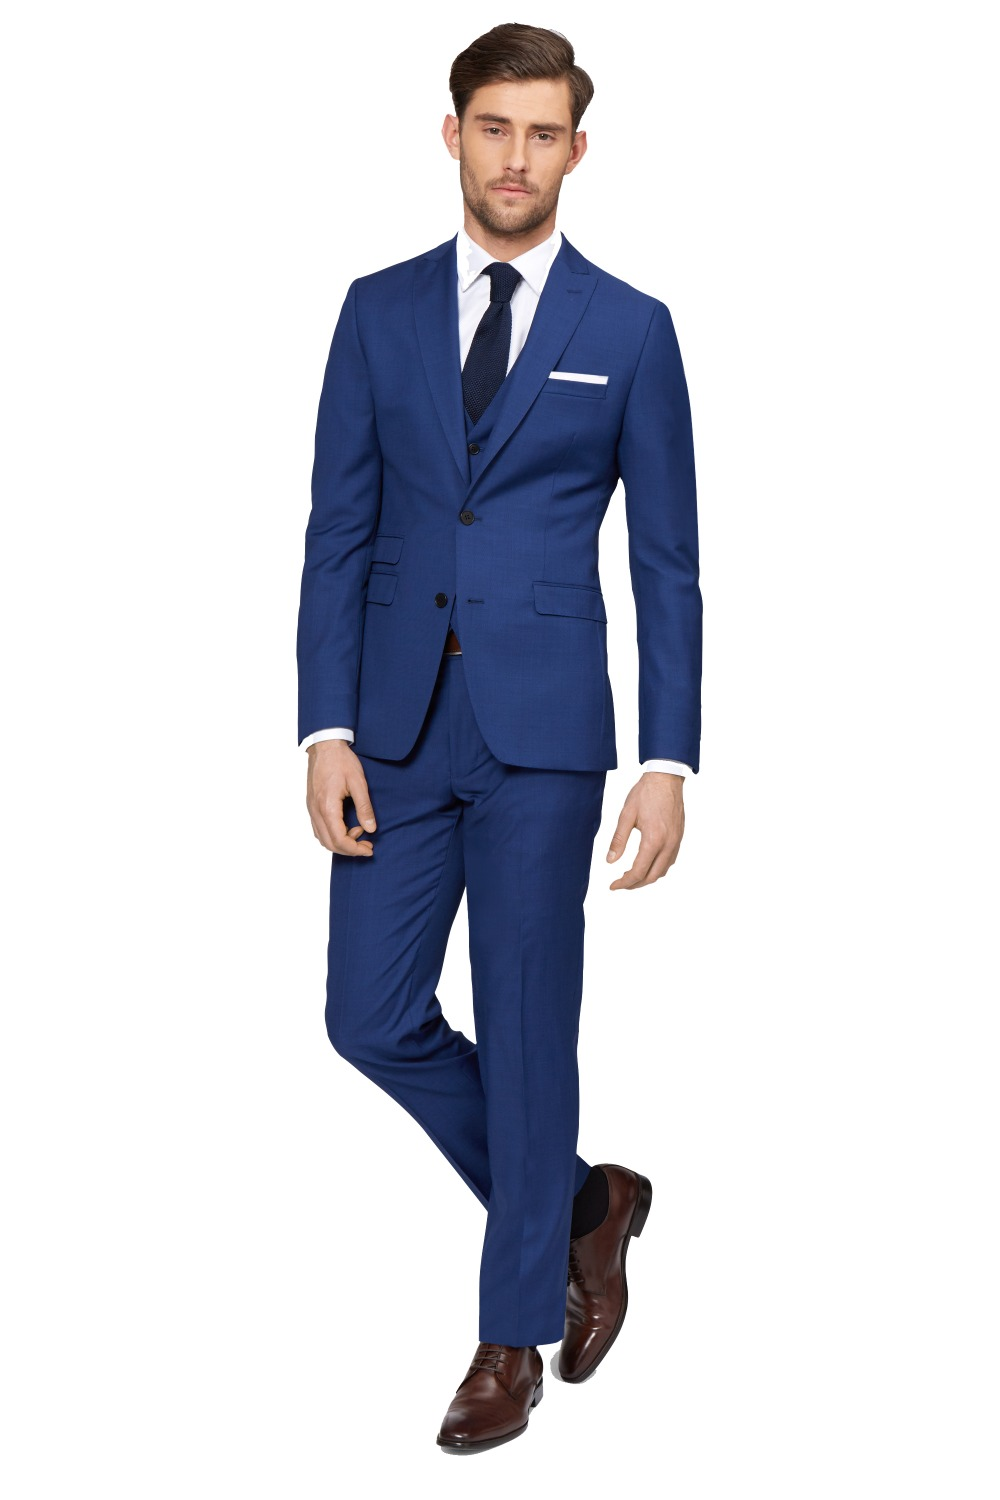 New arriving custom made 2 button peak lapel with ticket pocket mens suits slim fit 3pcs blue suit